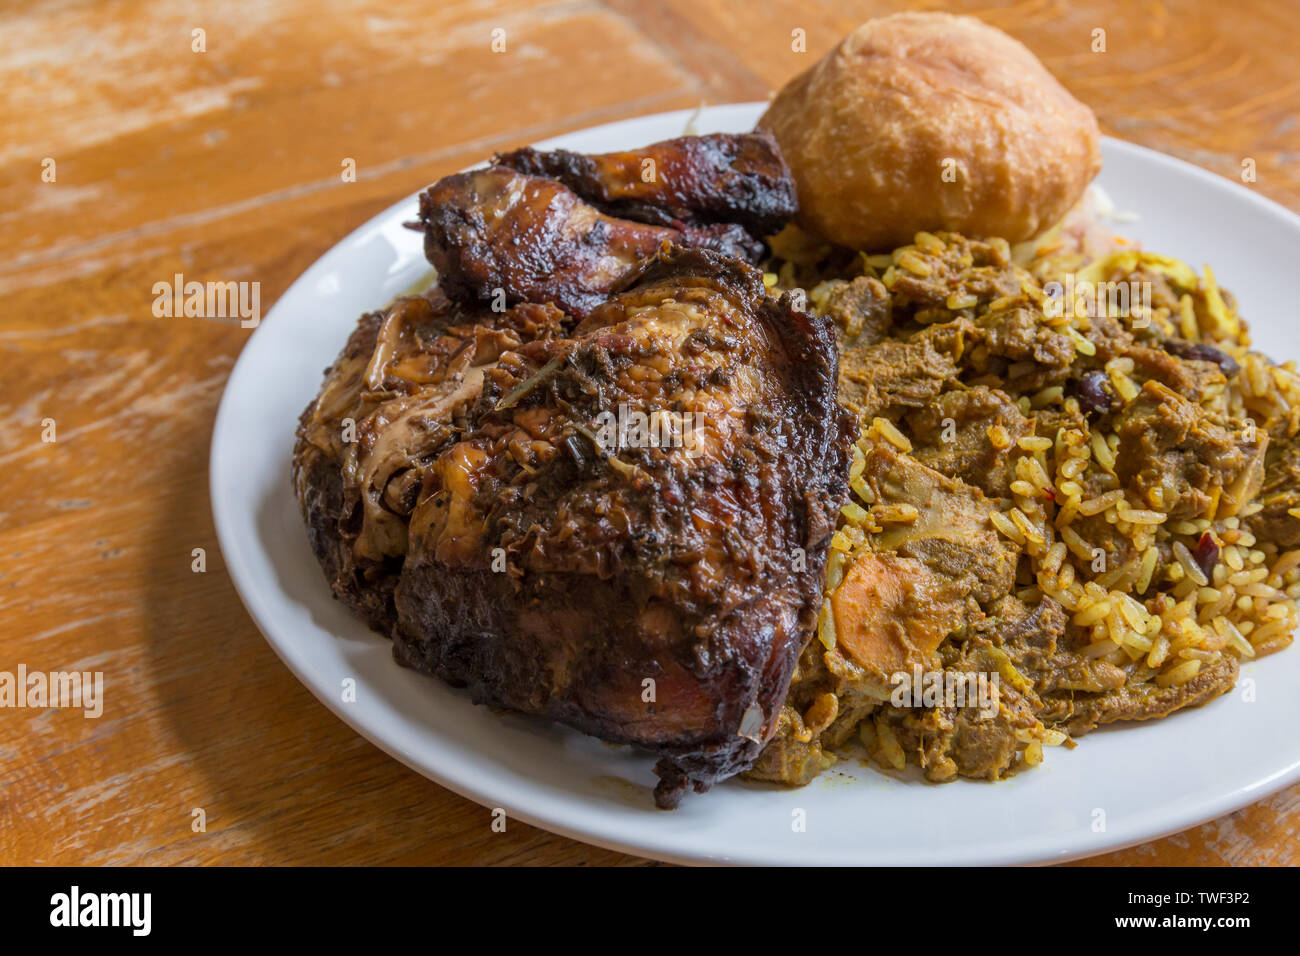 Jamaican food.  Traditional Jamaican curried goat, jerk chicken and fried dumpling with rice and peas - Stock Image